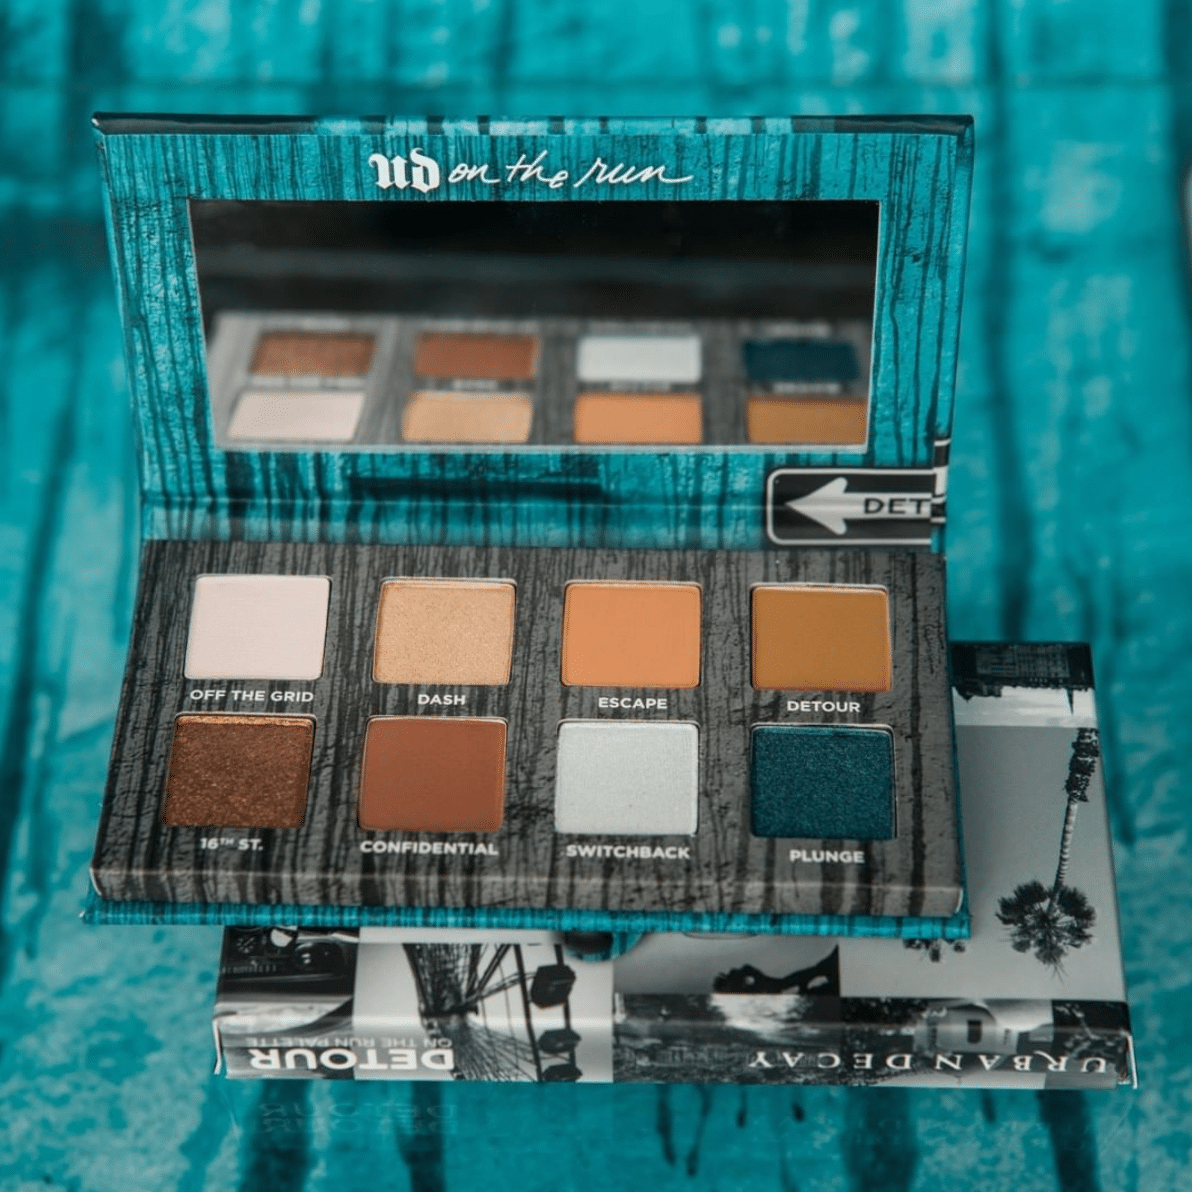 Urban Decay On the Run Collection Detour Eyeshadow Palette Ombretti - Info, prezzo, dove acquistare, data di uscita, review, recensione, opinioni, swatch